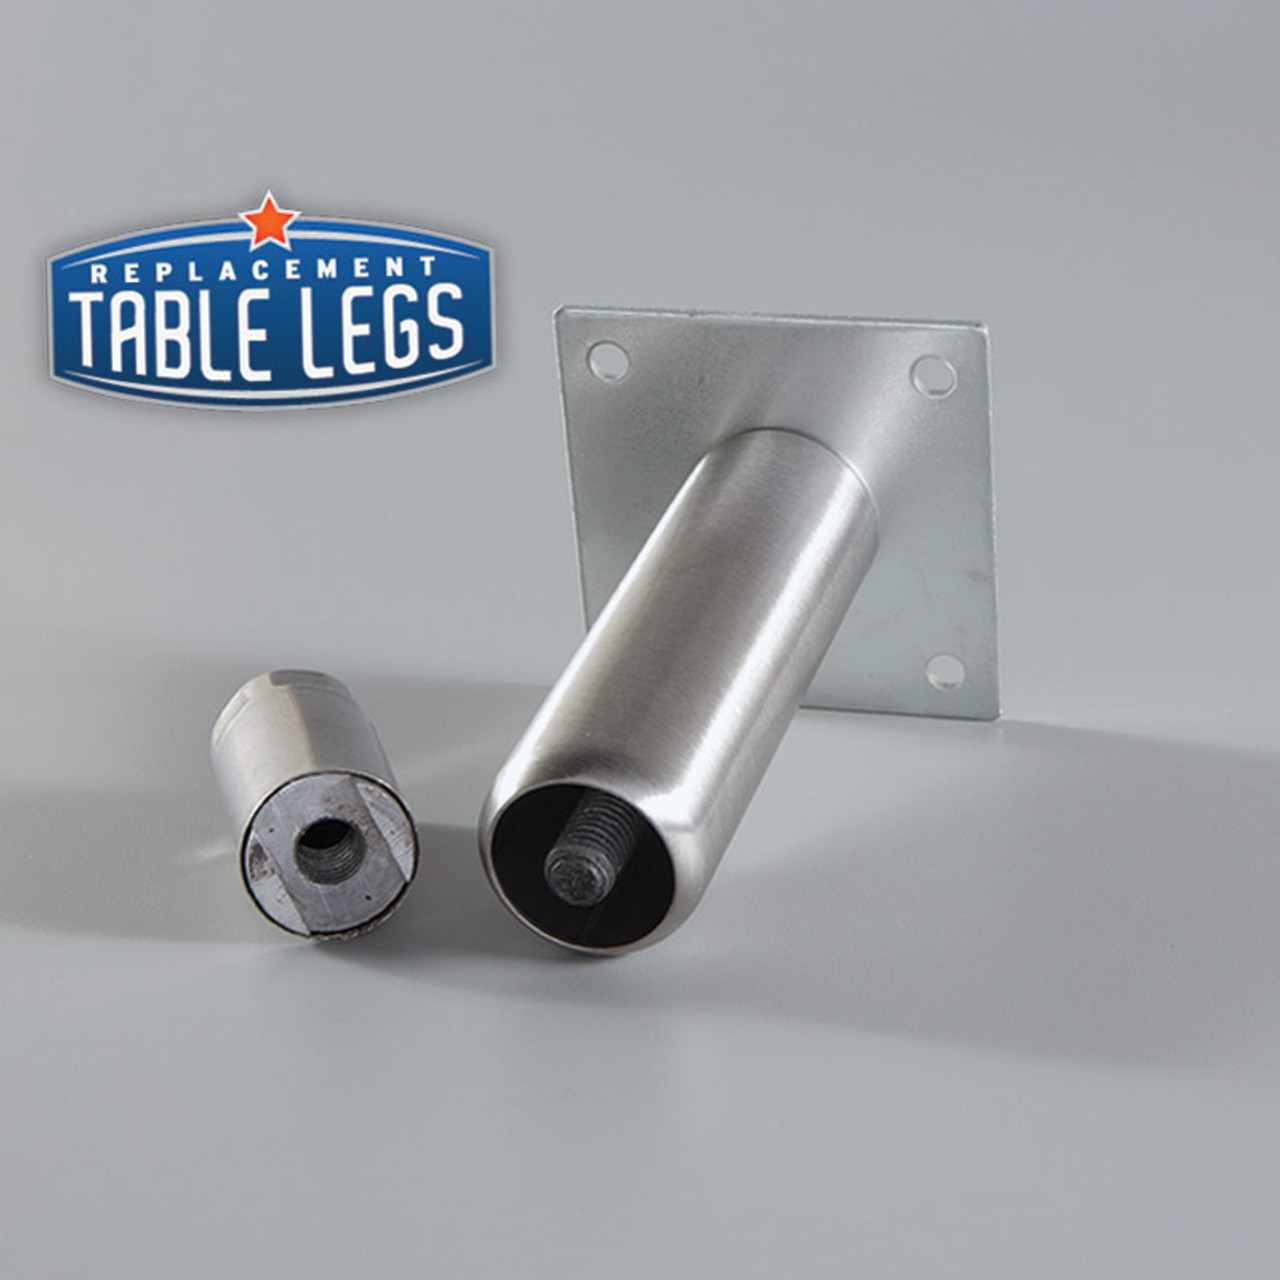 Mounting Bracket on Heavy Duty Equipment Leg with adjustable foot removed  - replacementtablelegs.com